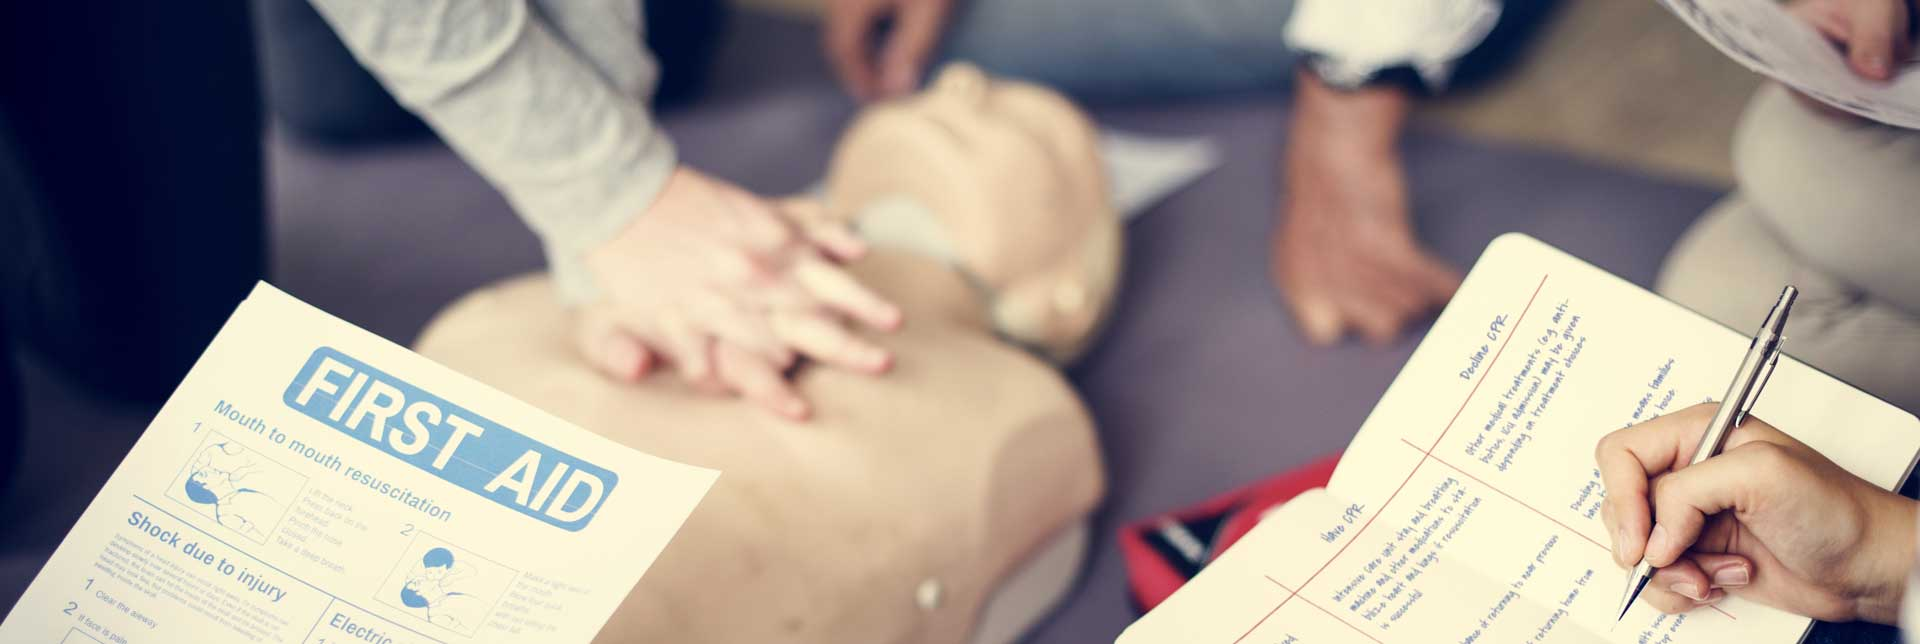 First Aid Cpr Training Program Training